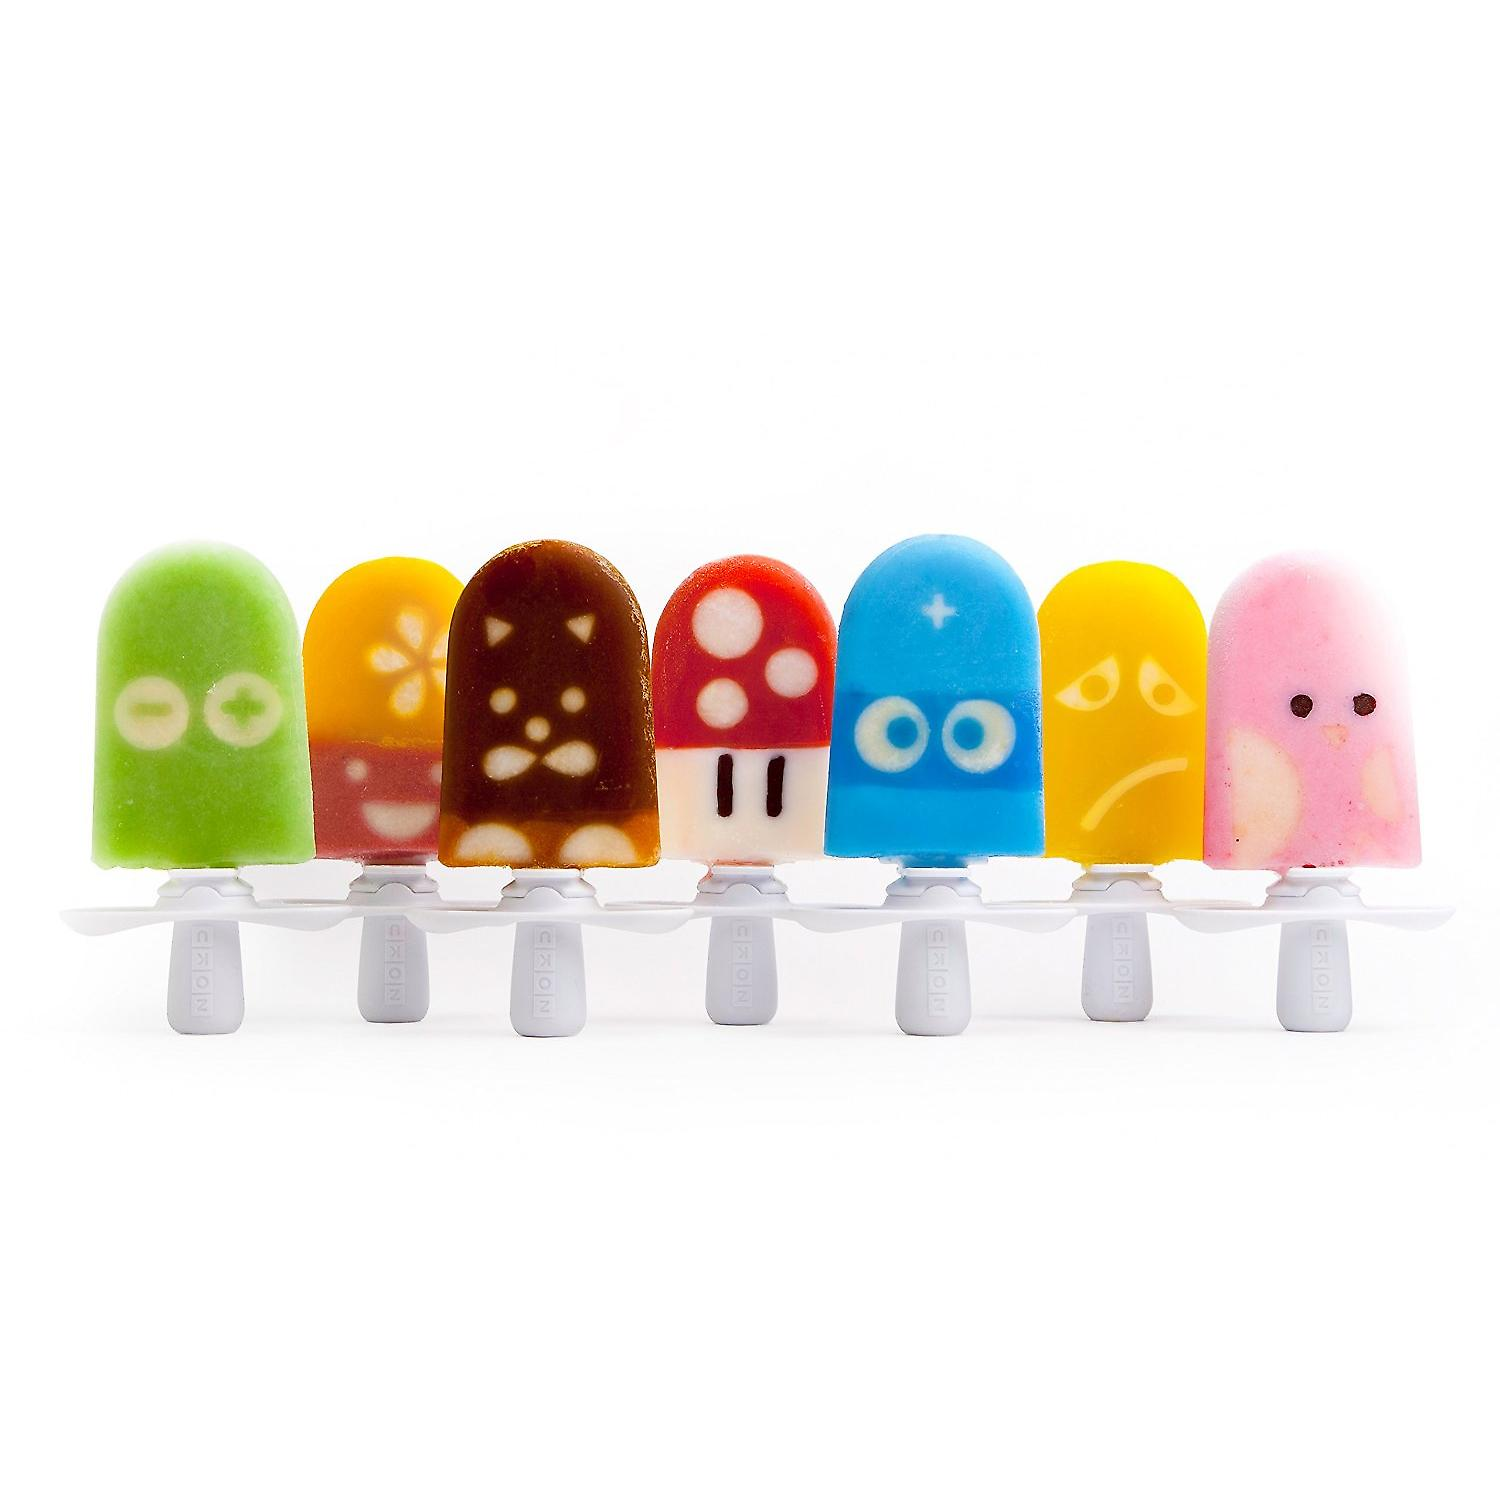 ZOKU Quick Pop Character Kit - stencils and faces kit for ice pops